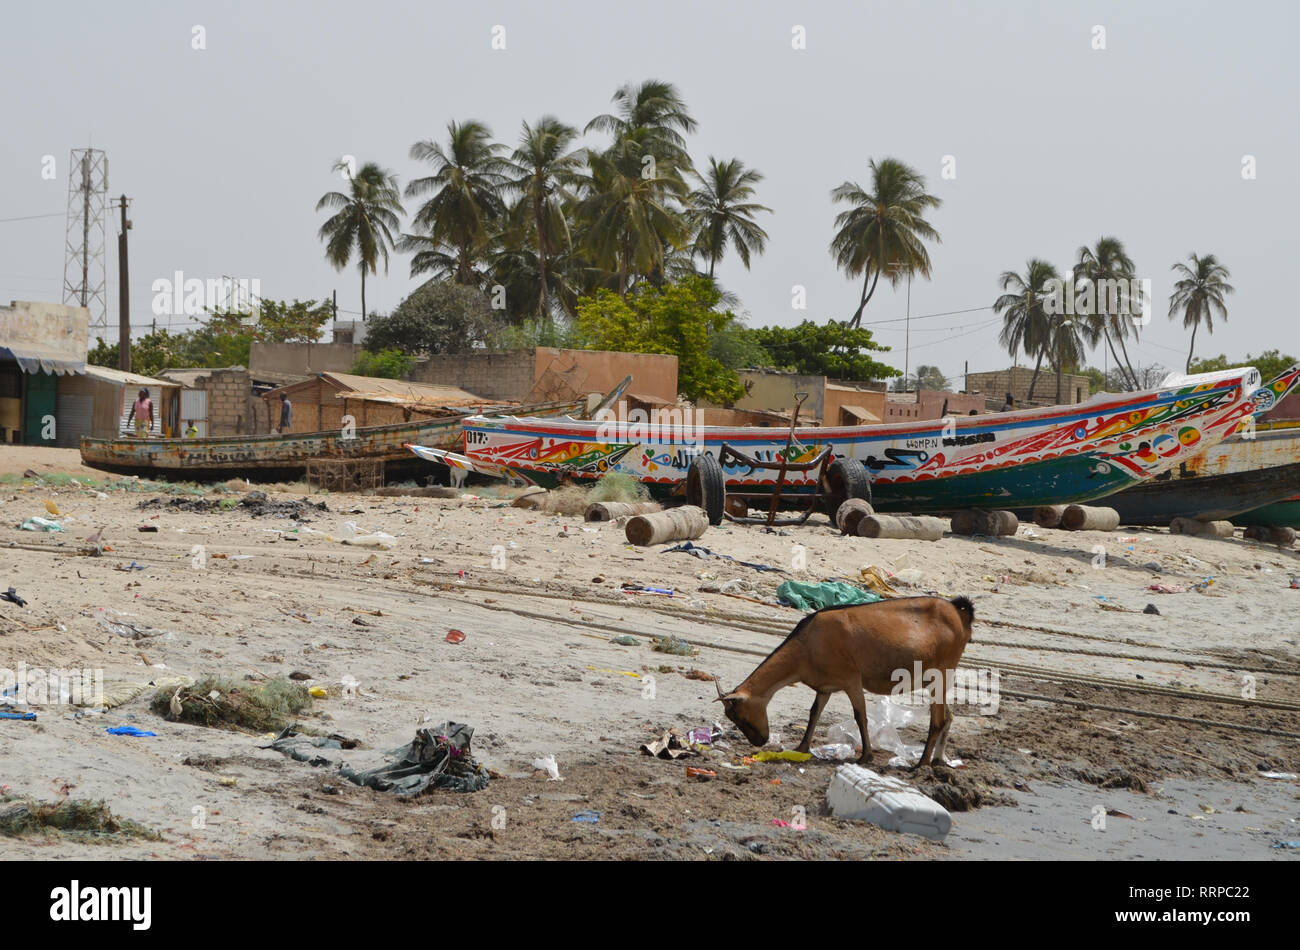 A goat forages for food amongst the litter in a beach on Senegal's Petite Cote, Western Africa - Stock Image